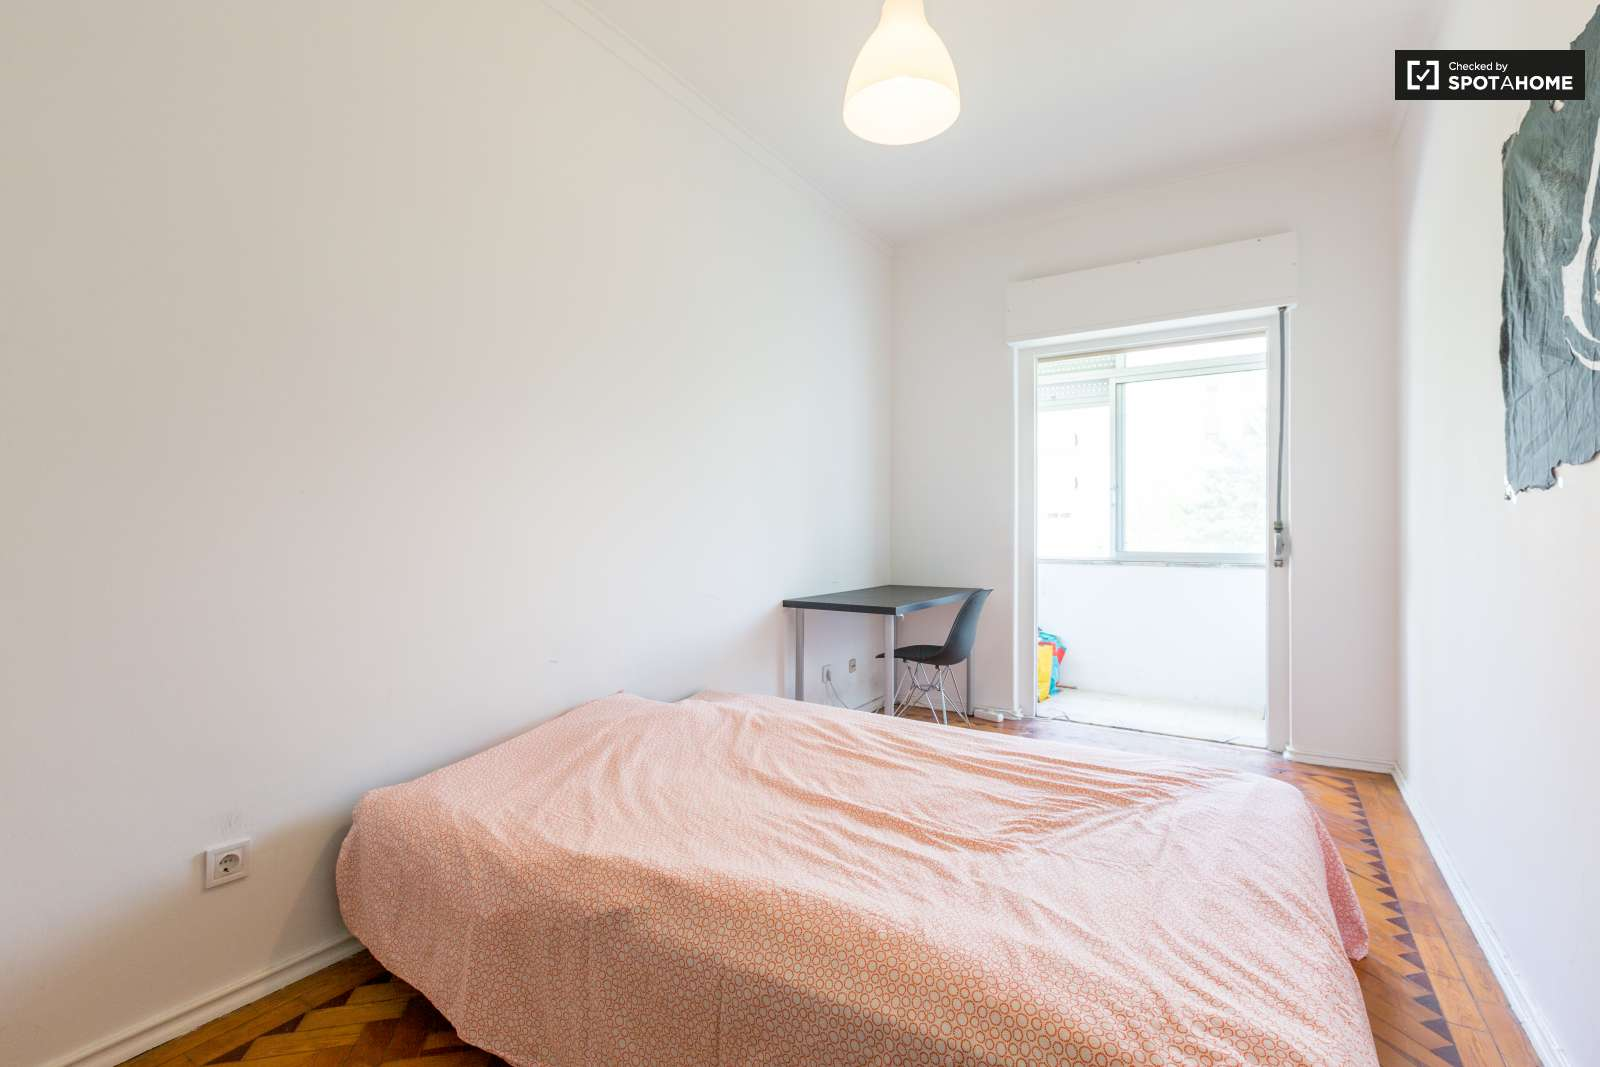 Large and Confortable Room for Rent in Cacém near Lisbon